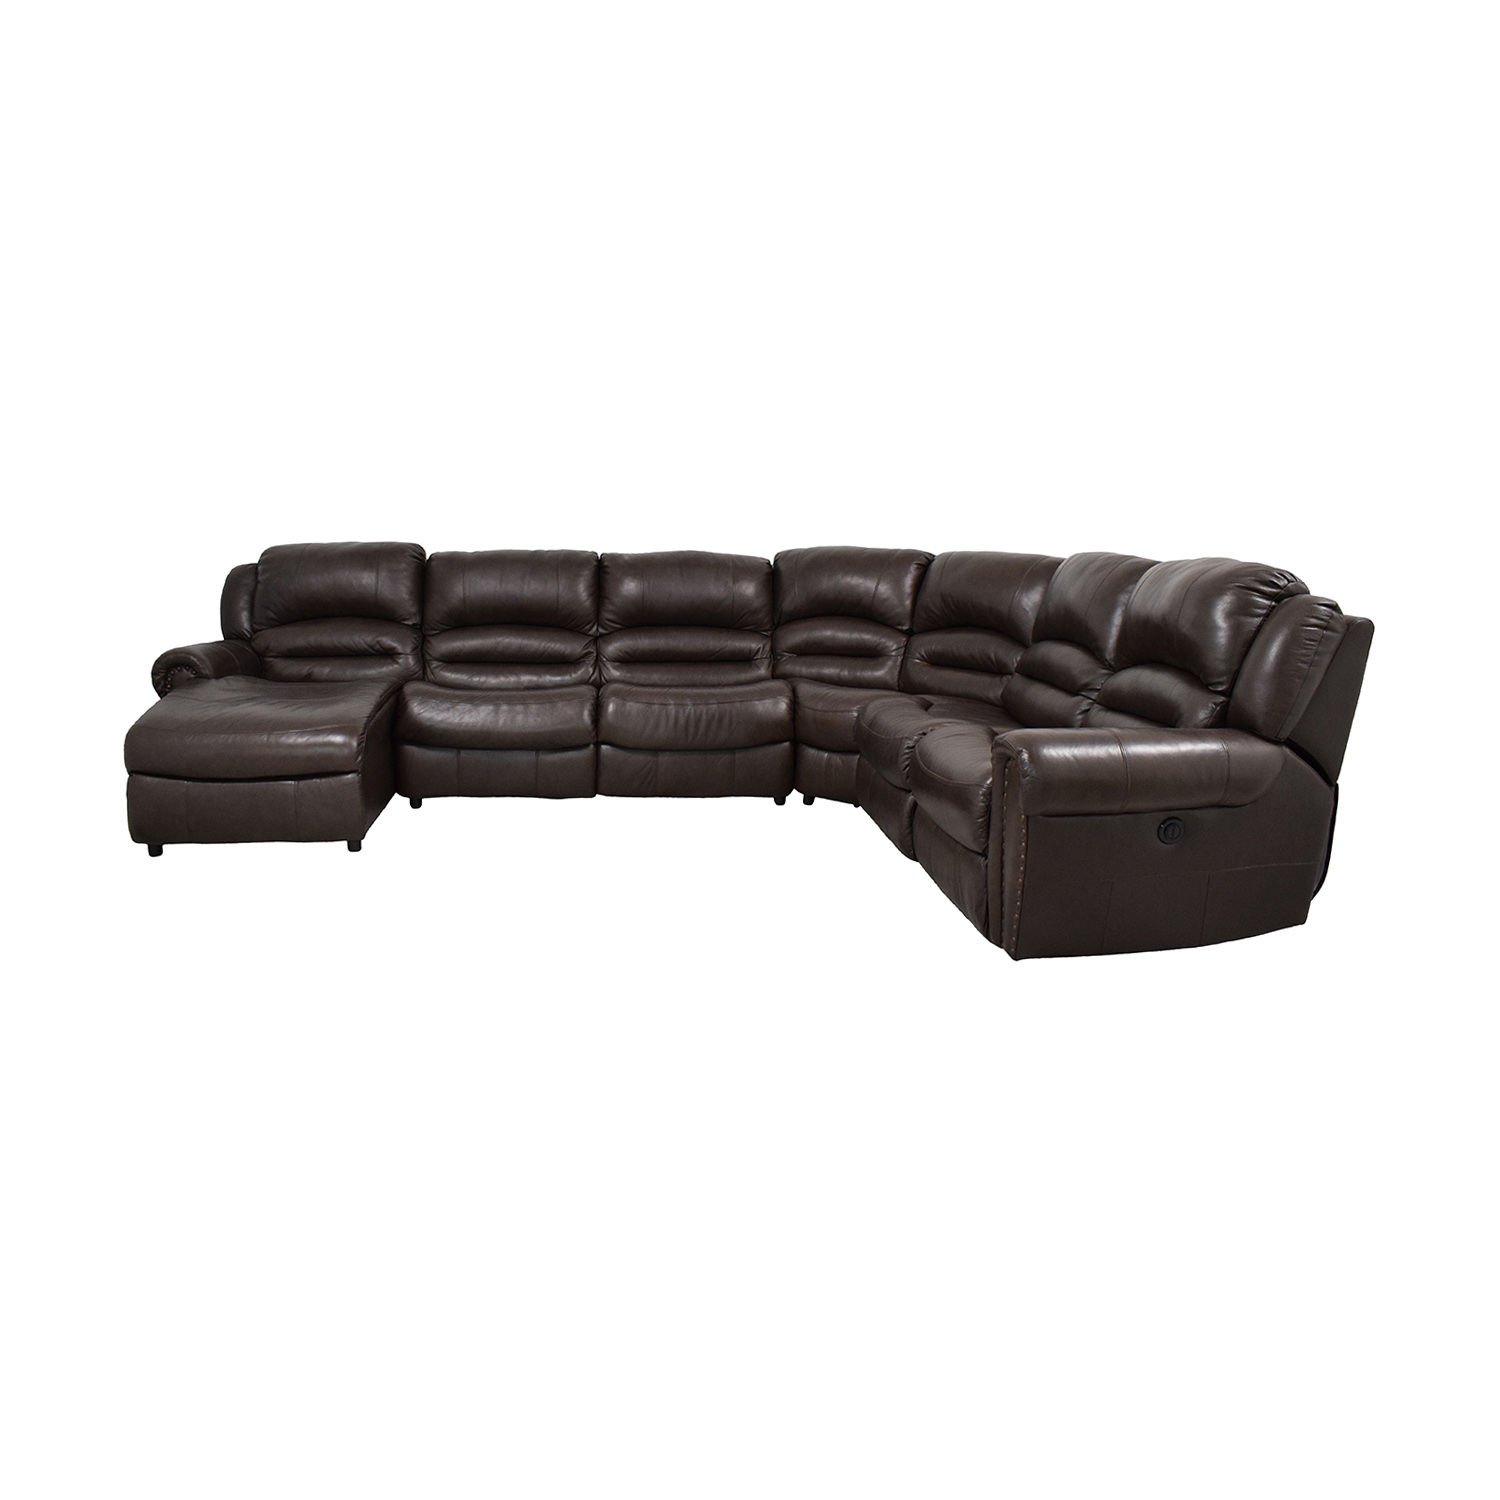 buy Raymour & Flanigan Chaise Recliner Sectional Sleeper Sofa Raymour & Flanigan Sofas